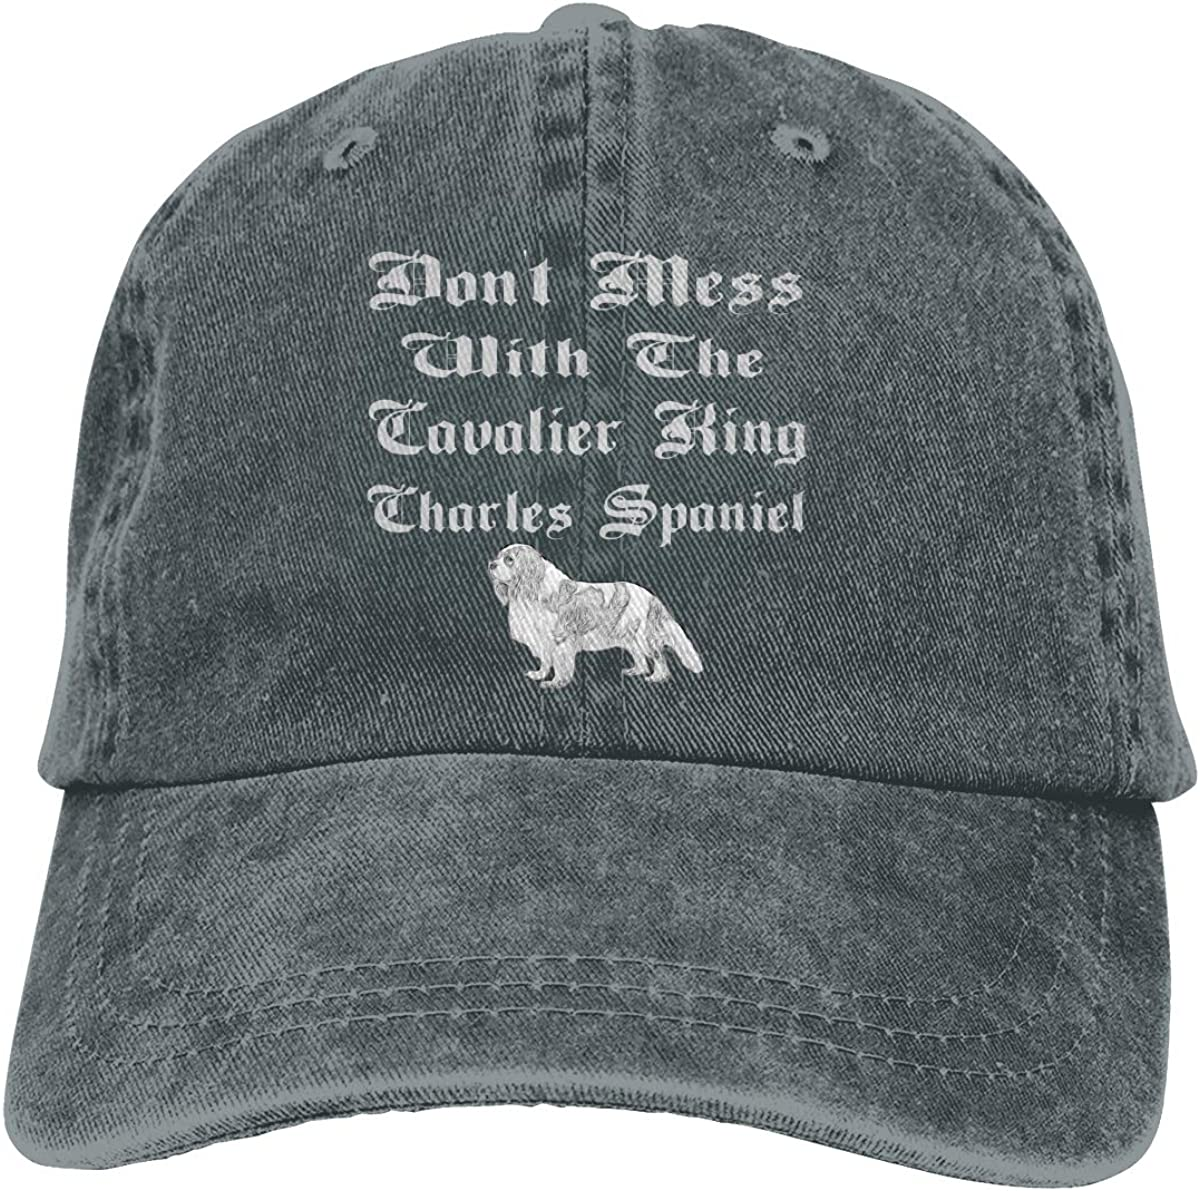 Dont Mess with The Cavalier King Charles Spaniel Baseball Hat Adjustable Jeans Cap Dad Hat